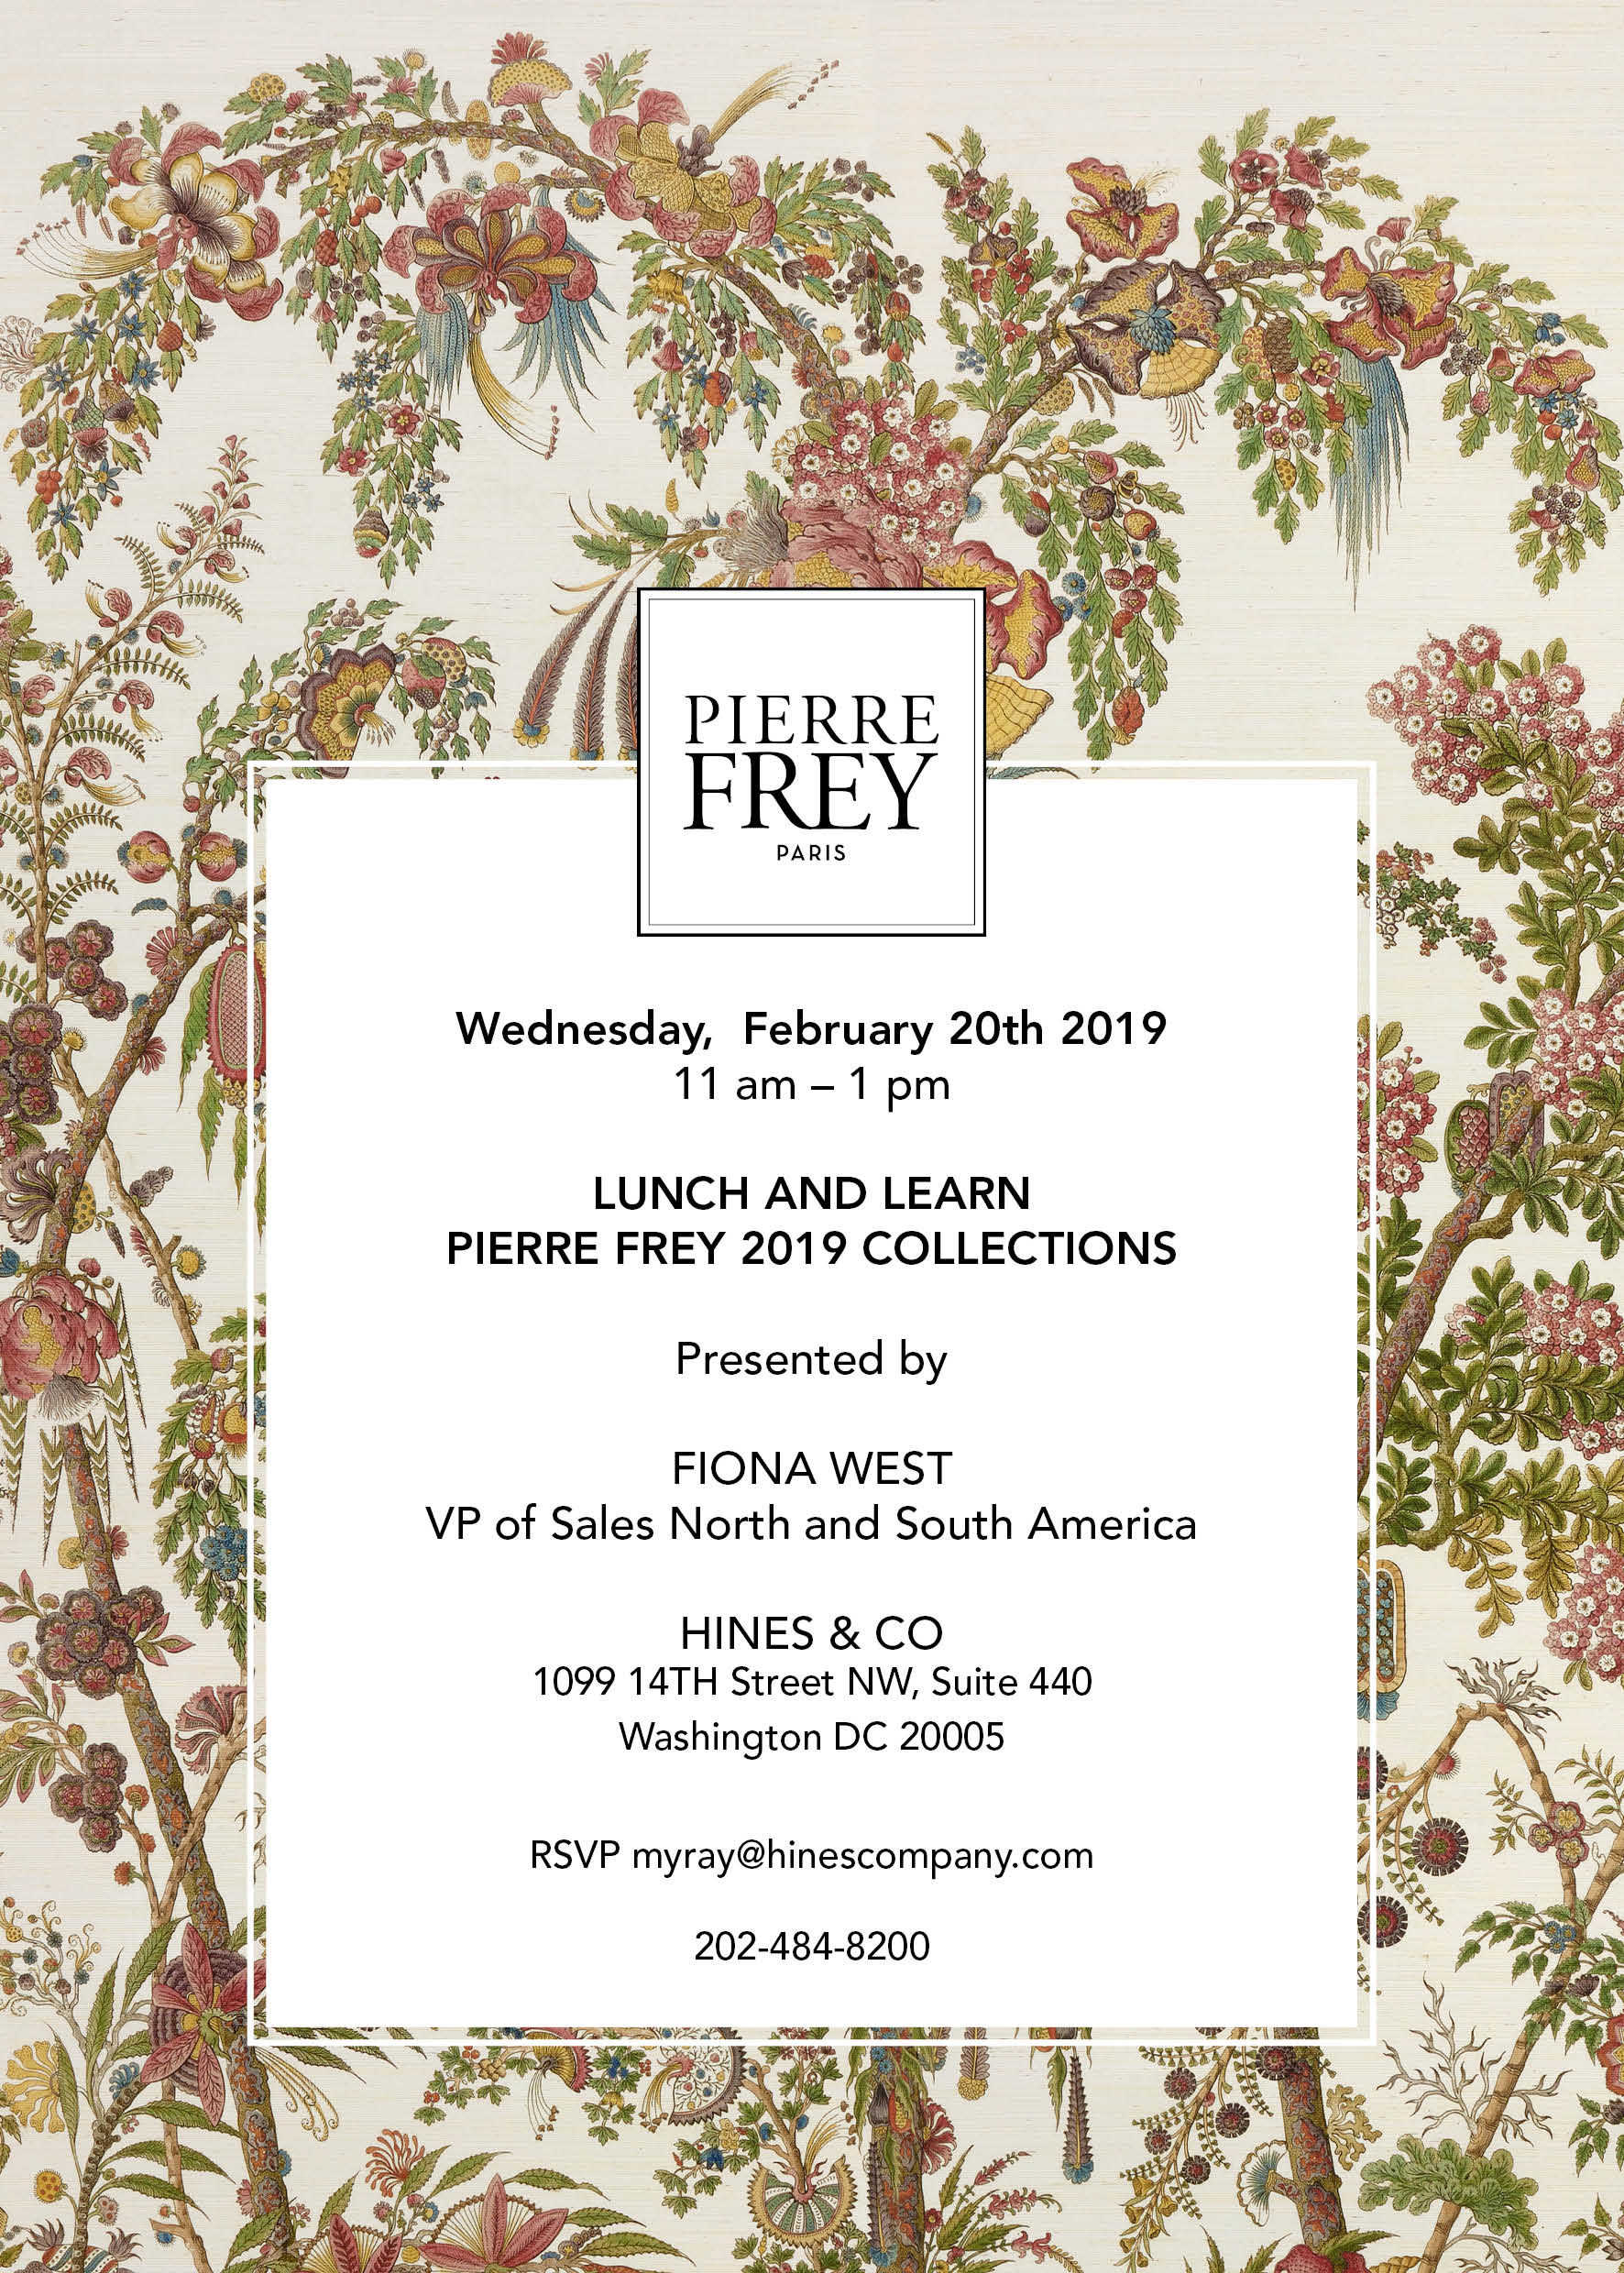 Pierre Frey Lunch & Learn at Hines & Co in the Washington Design Center